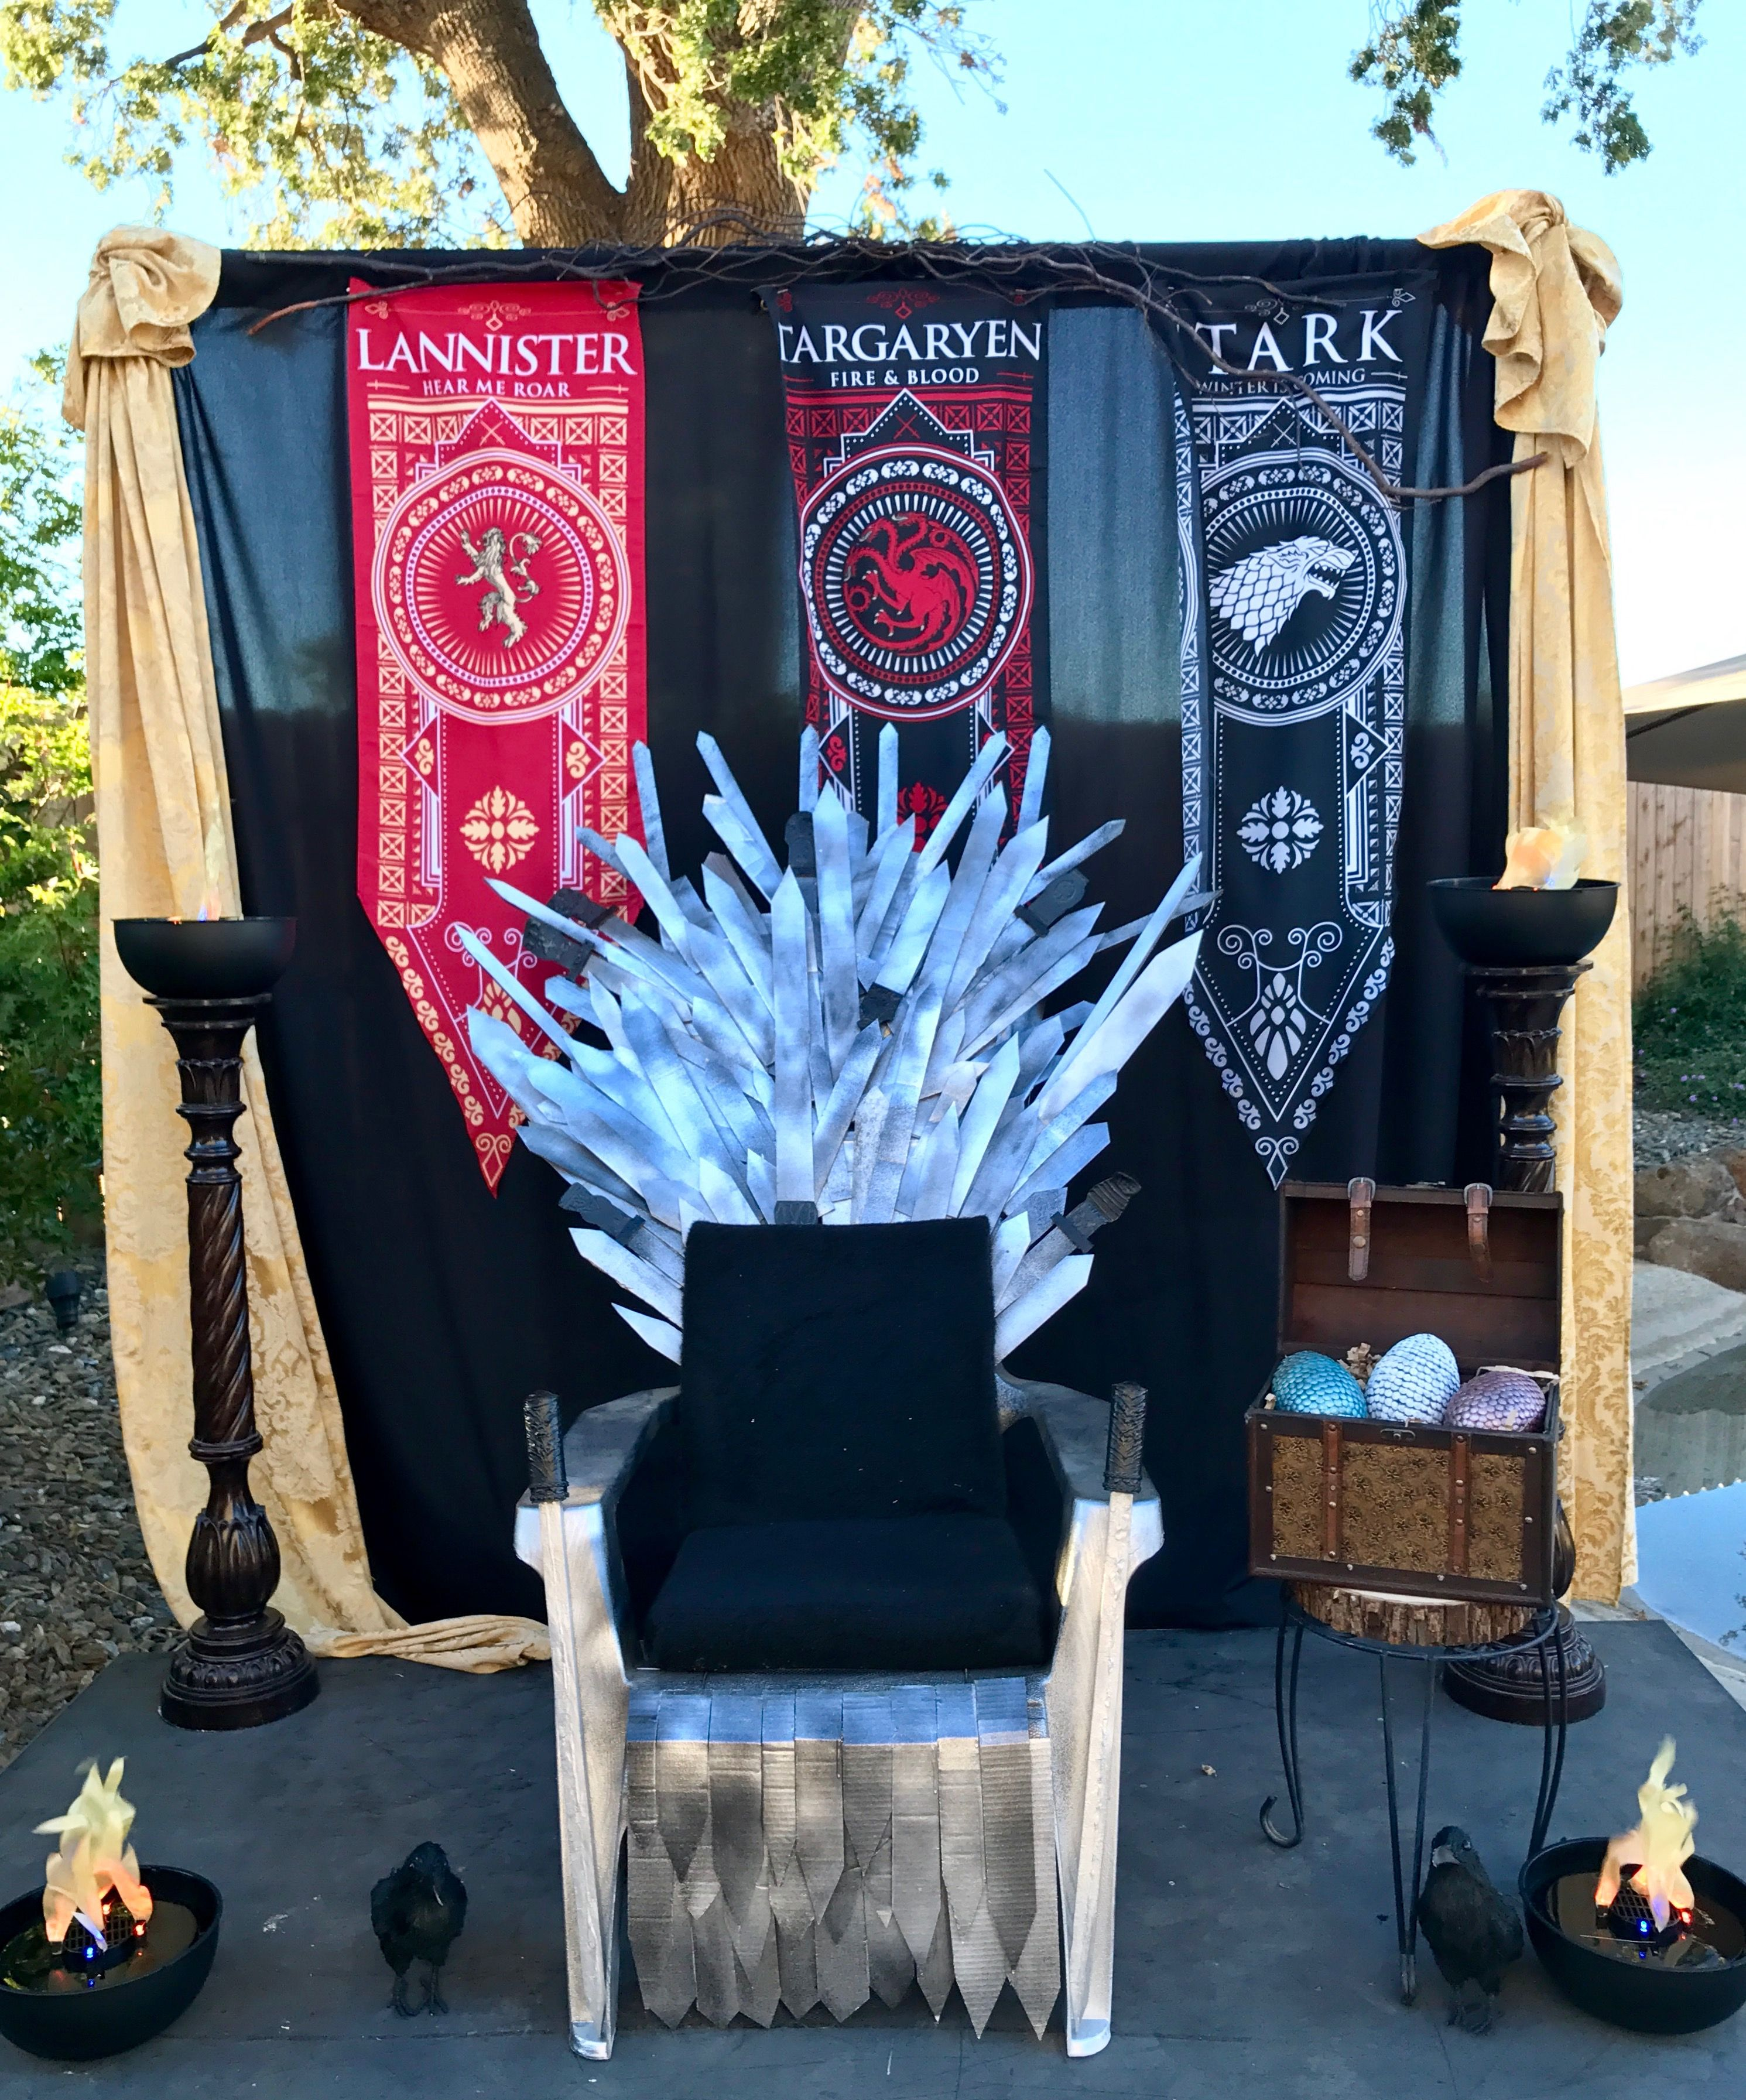 game of thrones office chair marcel breuer cesca replacement cane seat party backdrop decor festa games